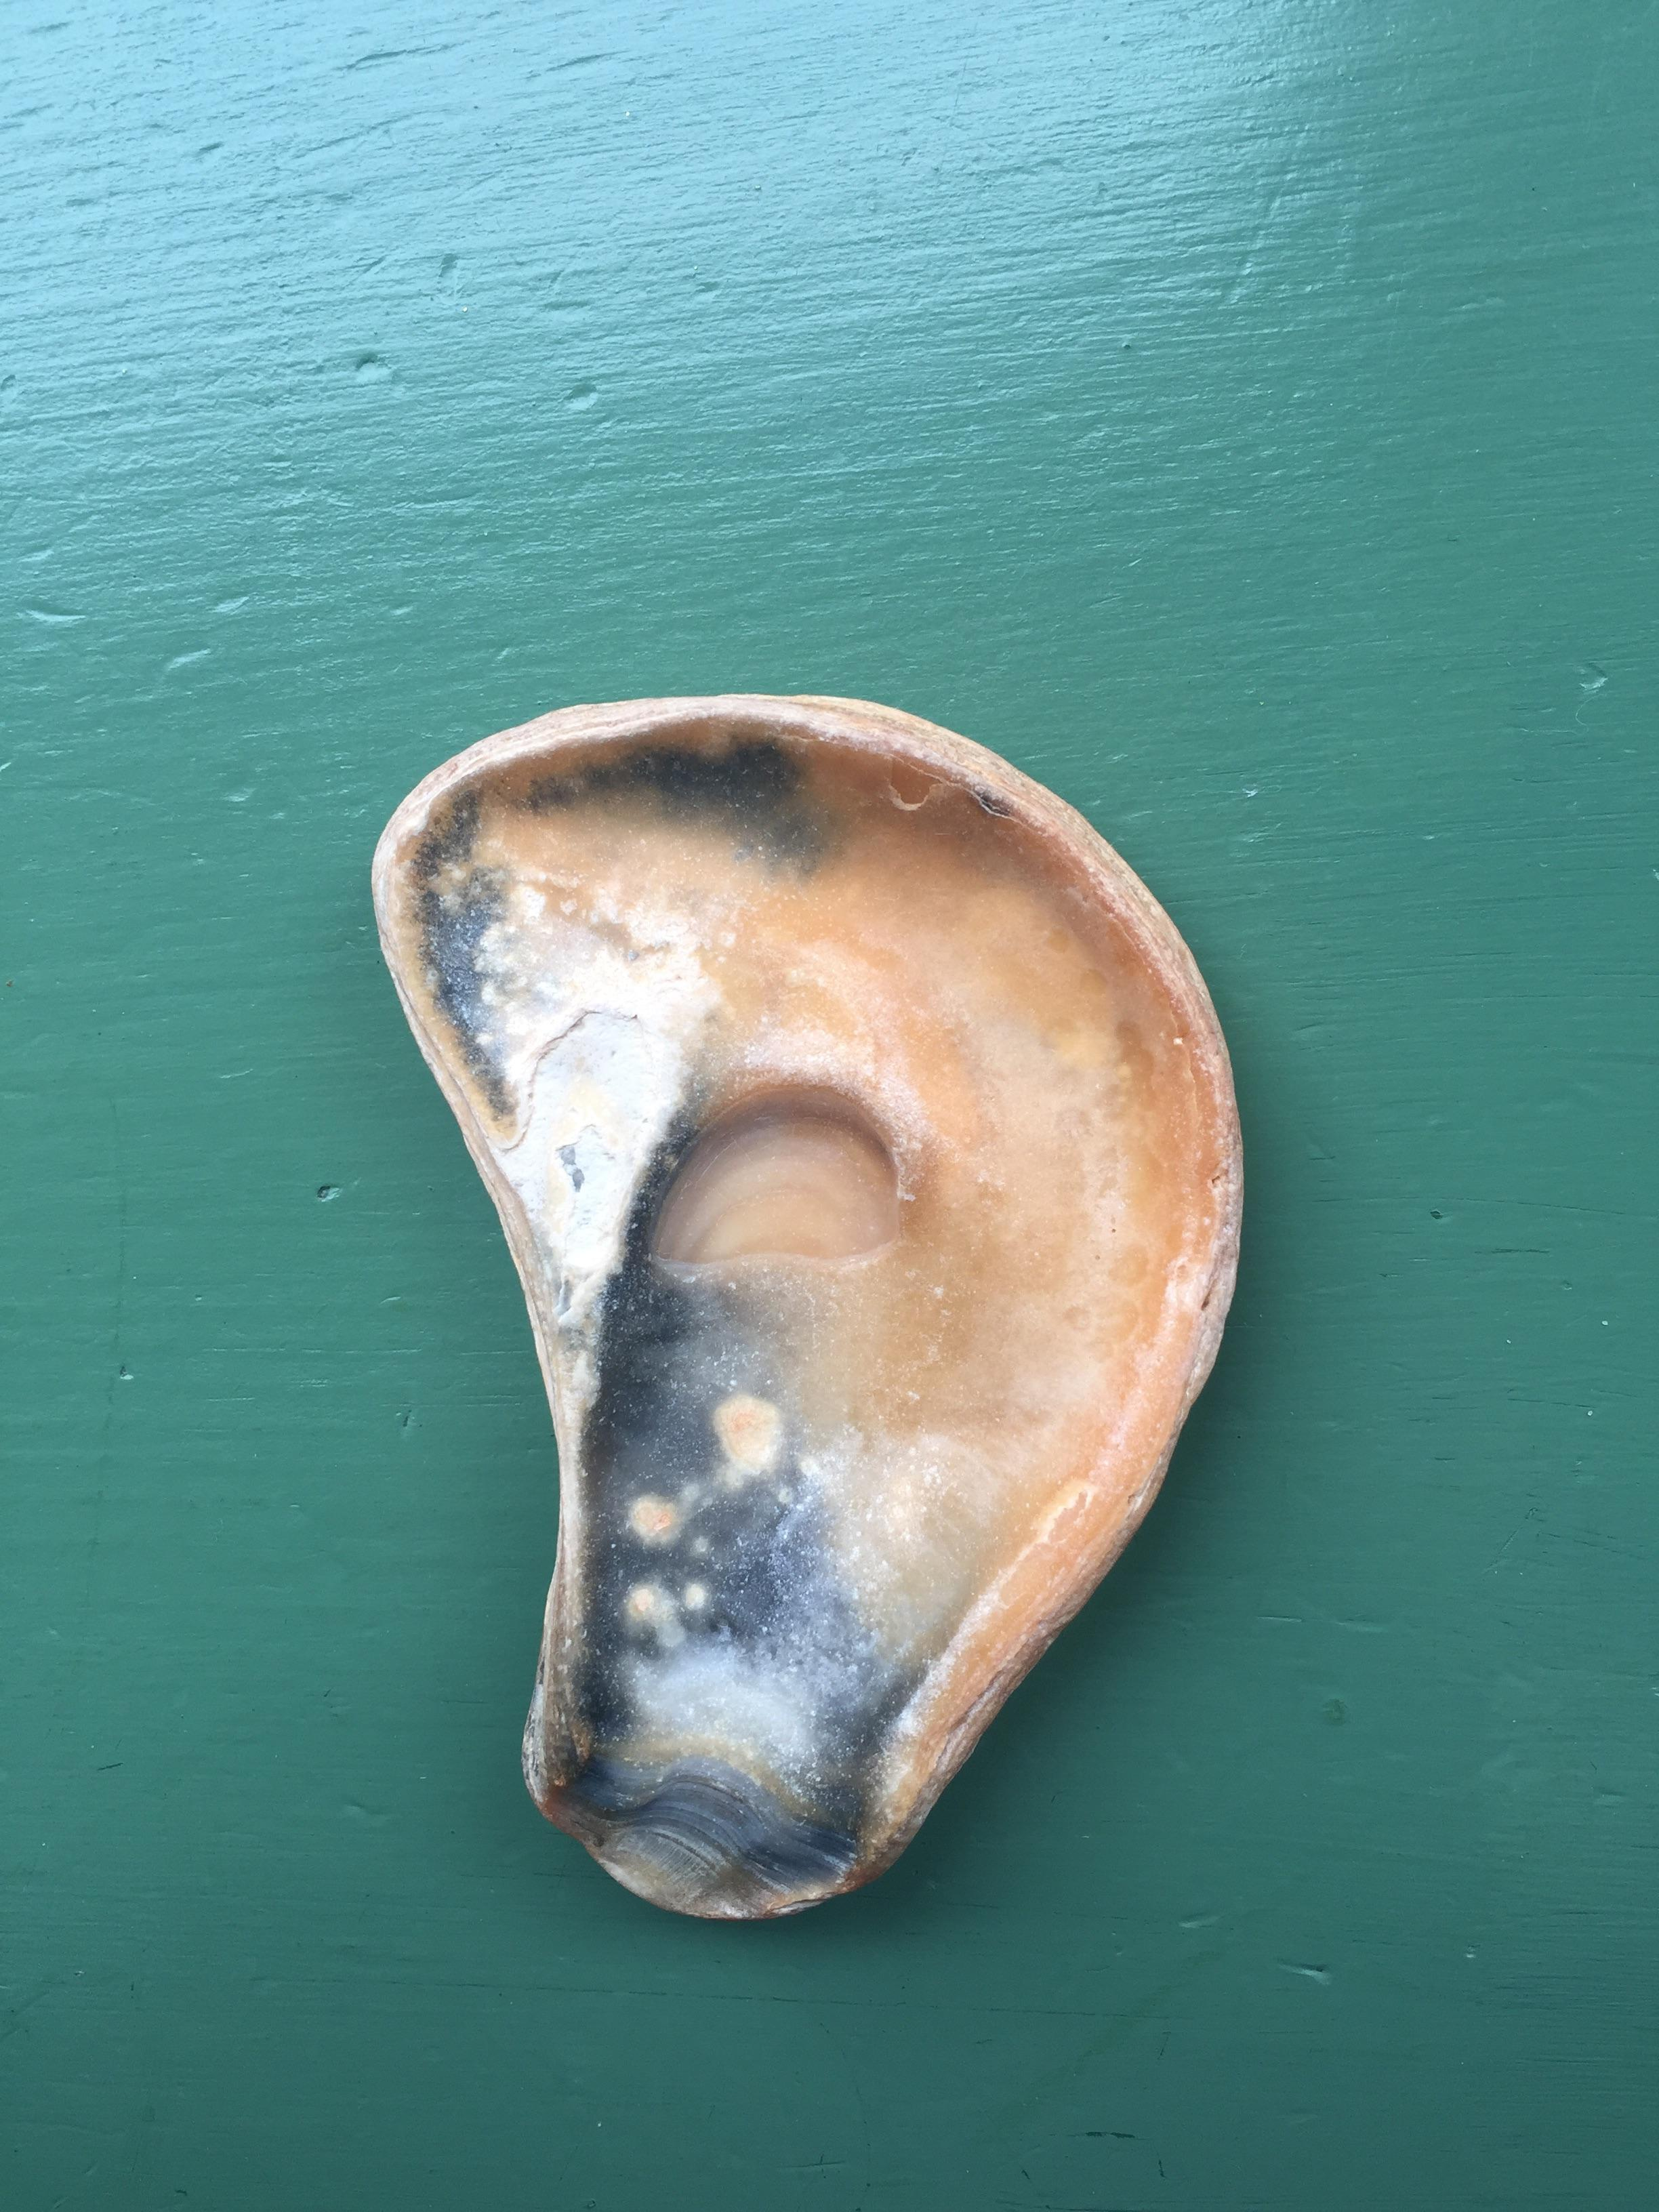 This shell looks like an ear